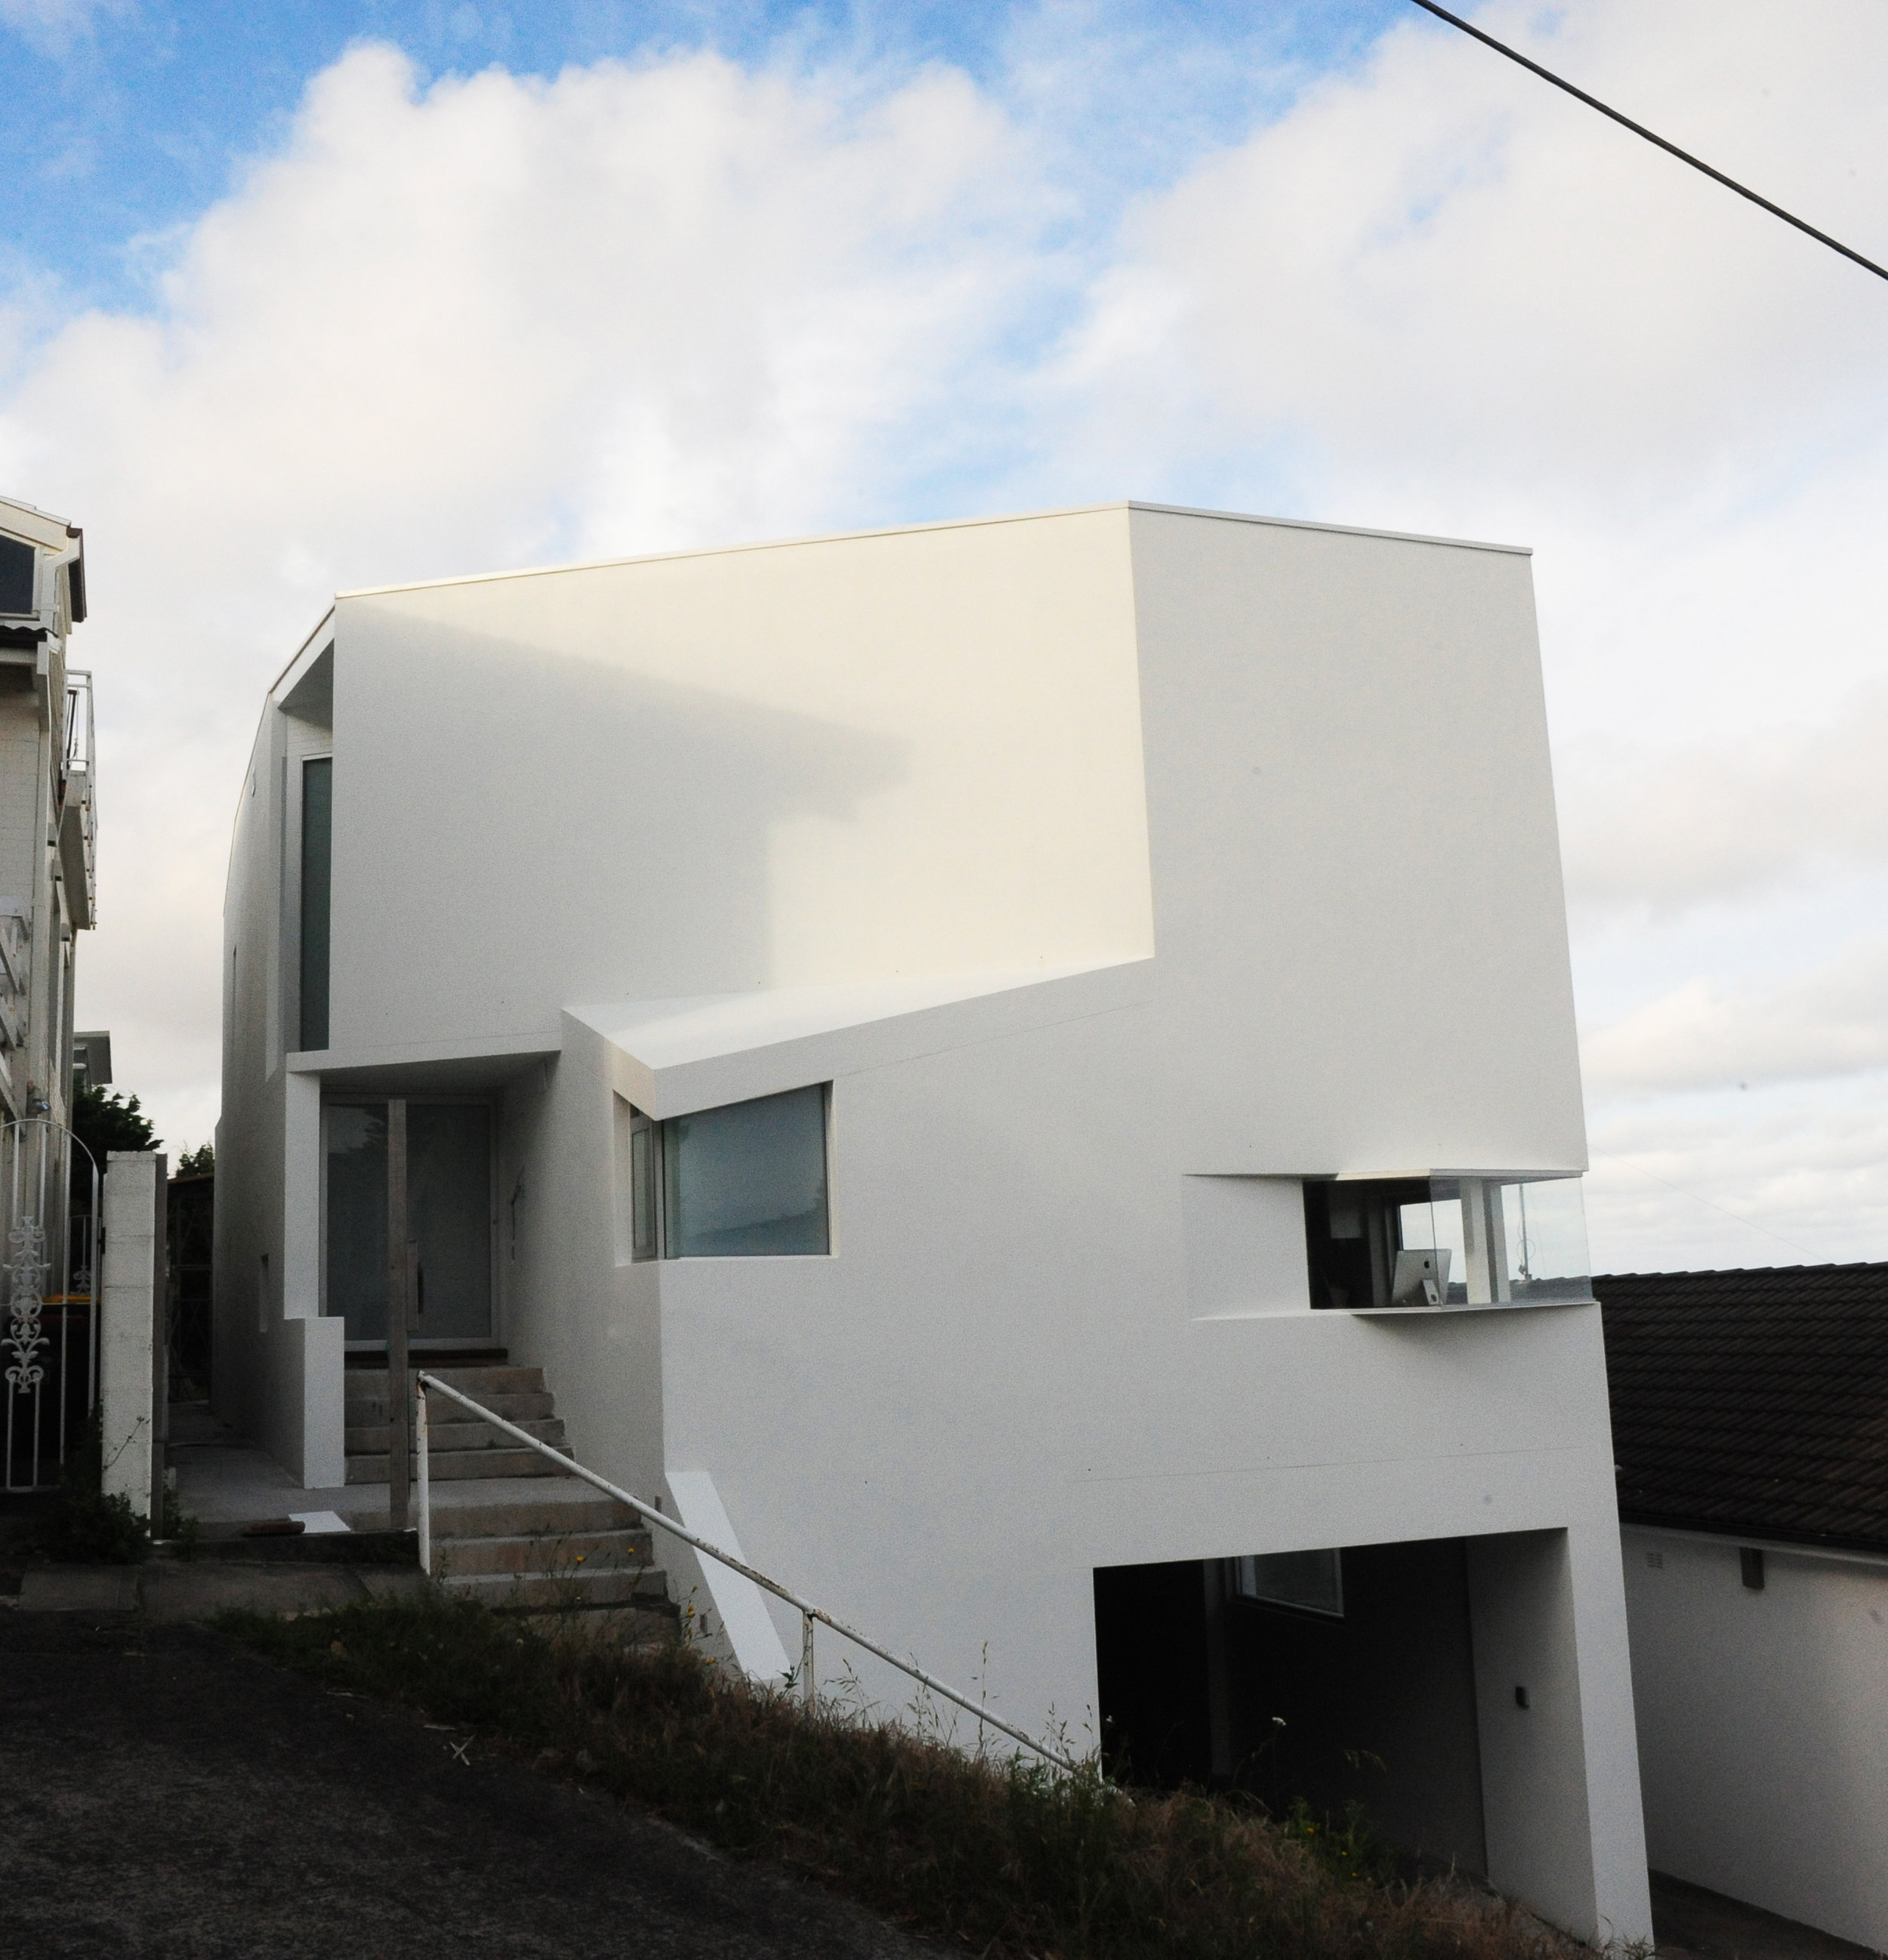 House at Coogee_street view_2_cropped.jpg